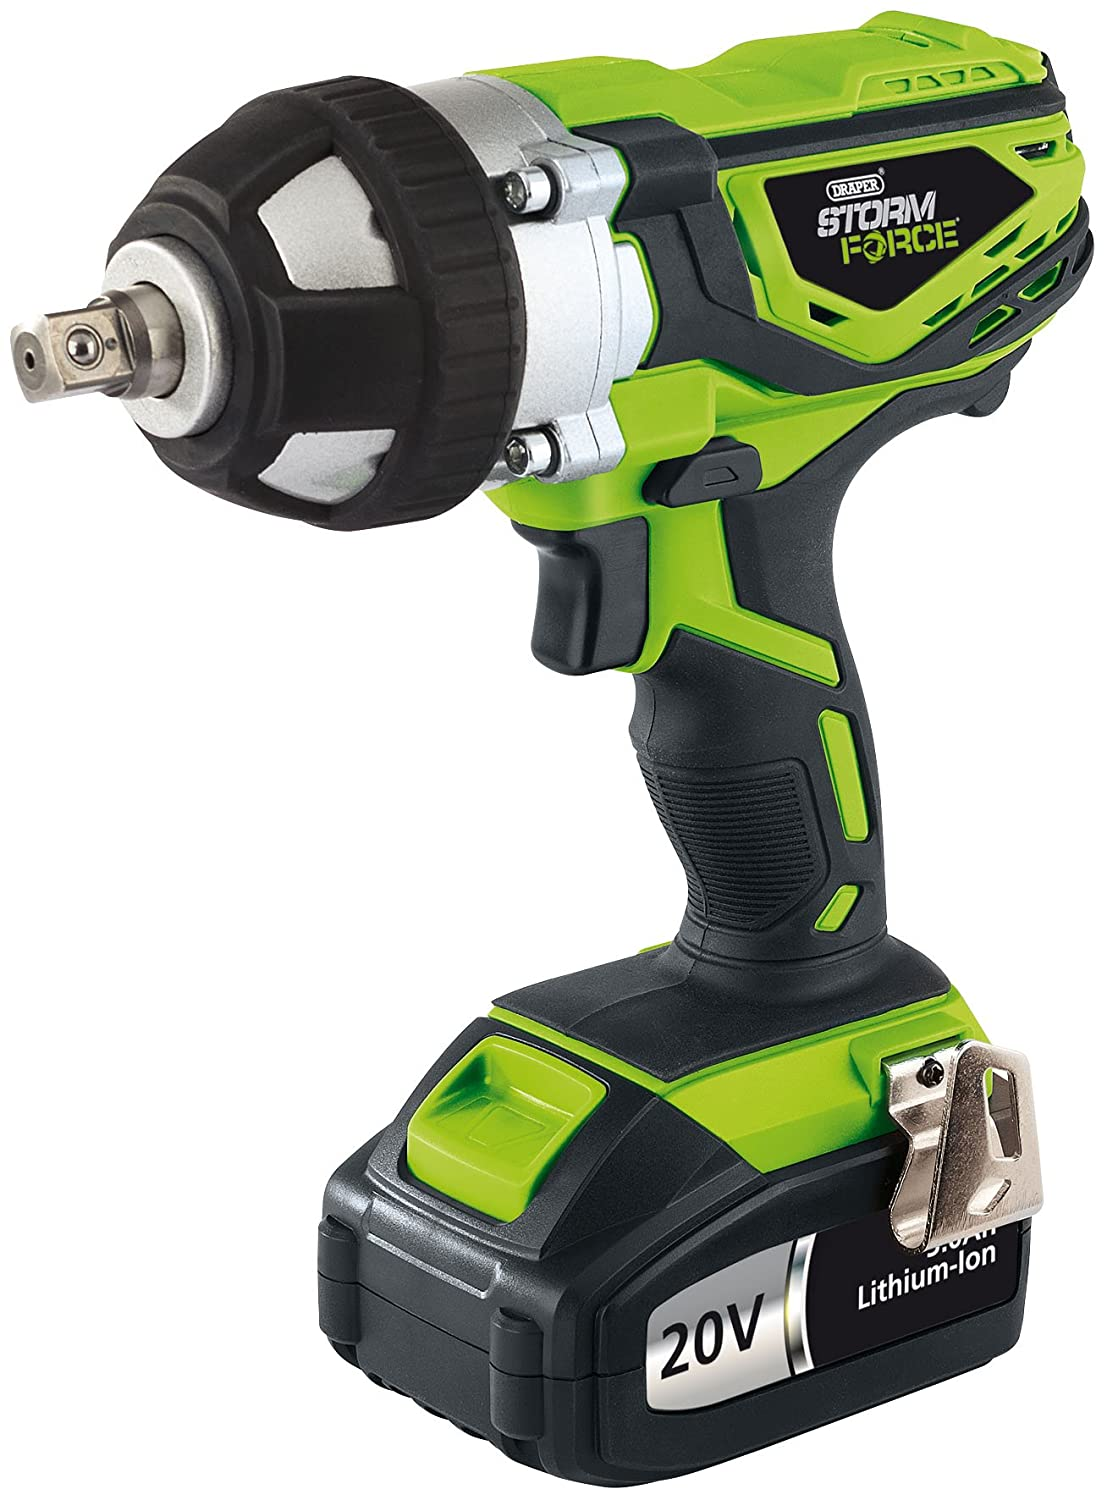 Draper 01031 storm force cordless impact wrench (20v)